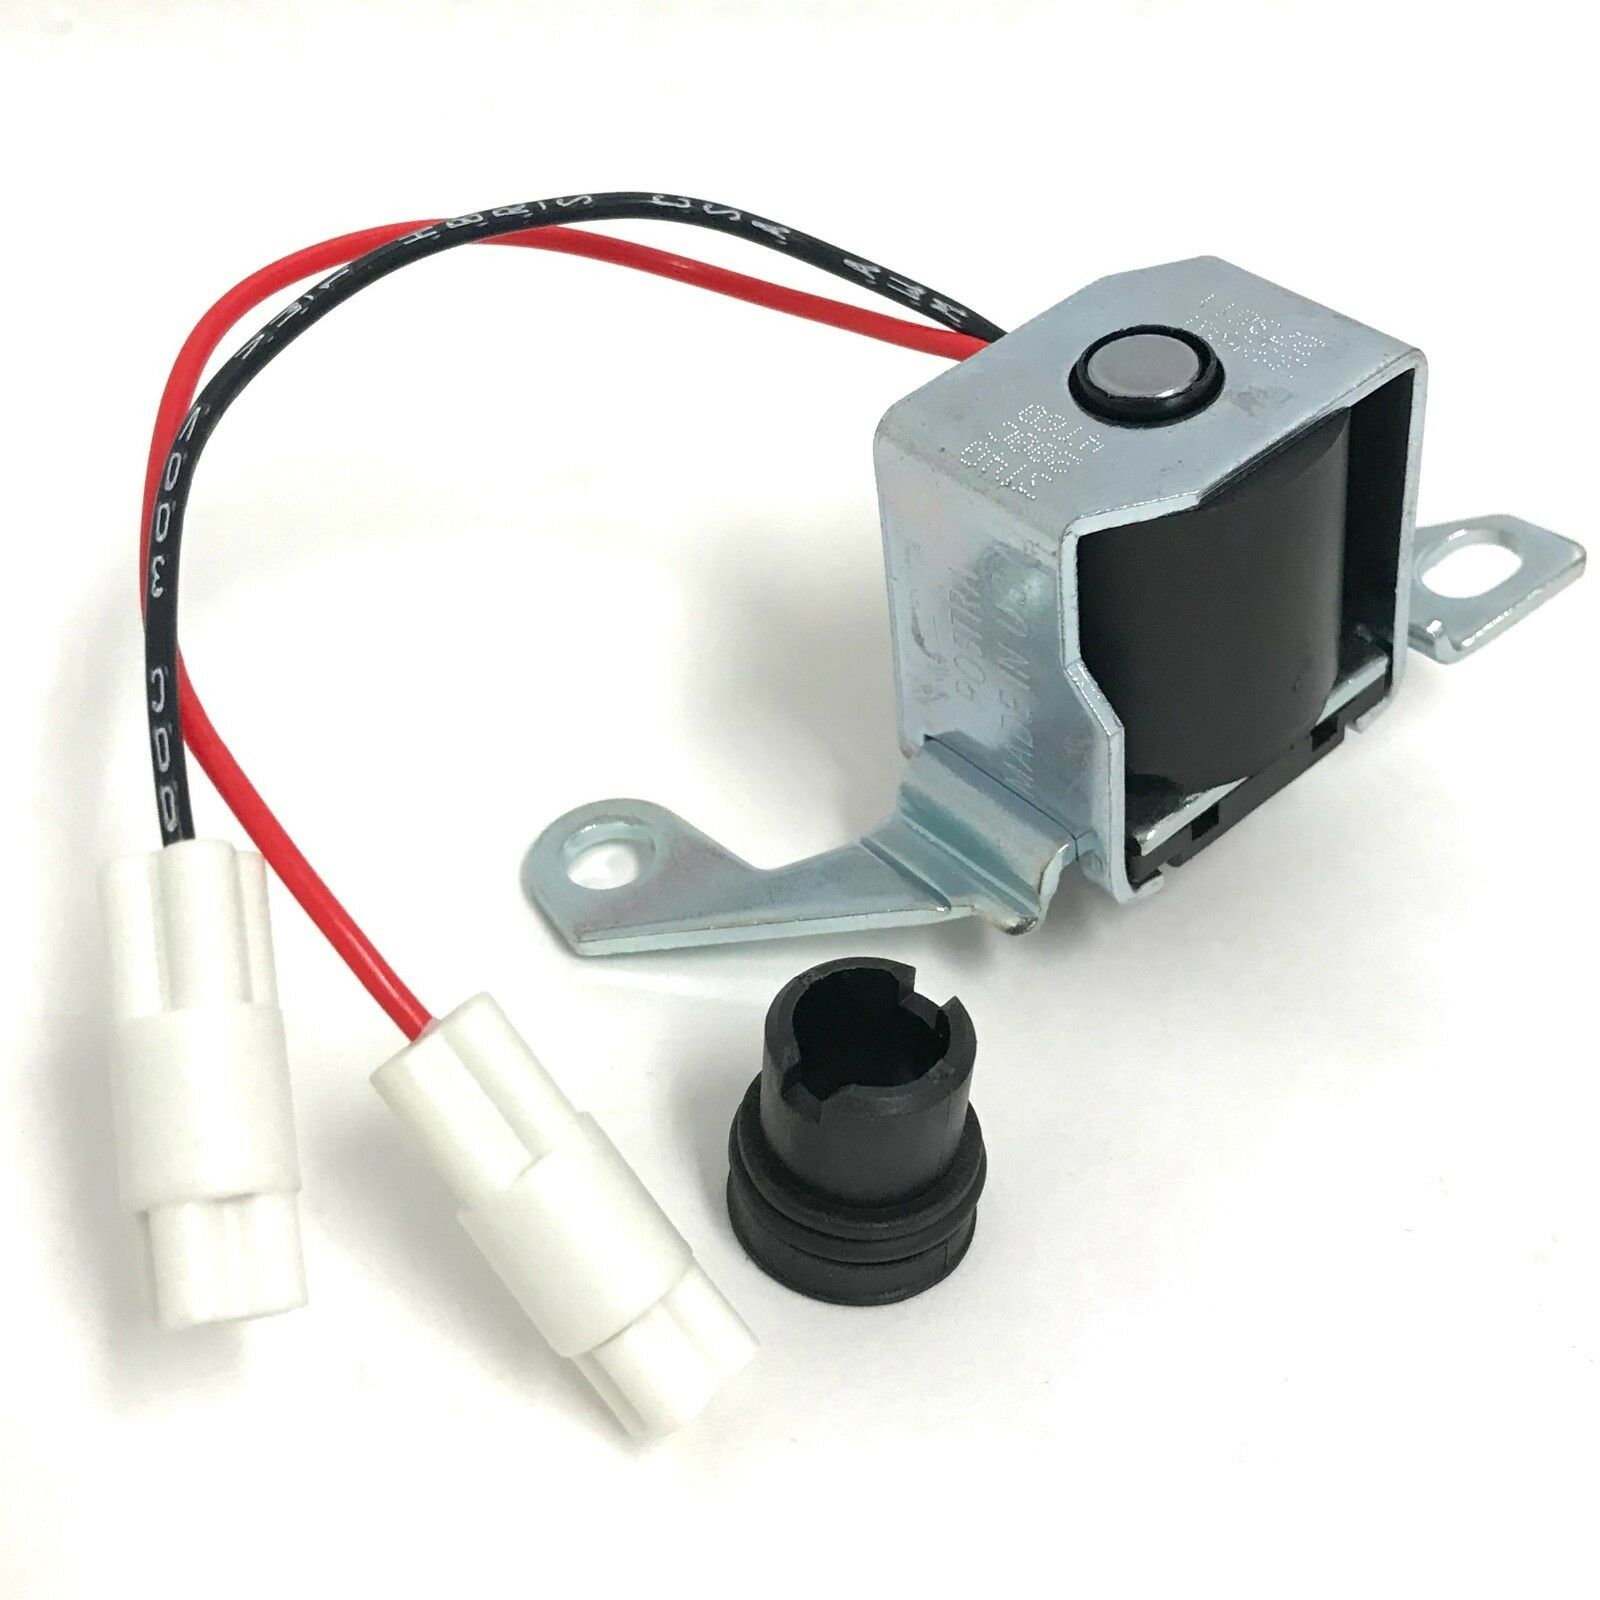 Th125 Th125c Th440 4t60 Transmission Tcc Lock Up Solenoid New Gm Harness Rostra Wire Bmw 5l4oe 1 Of 3free Shipping